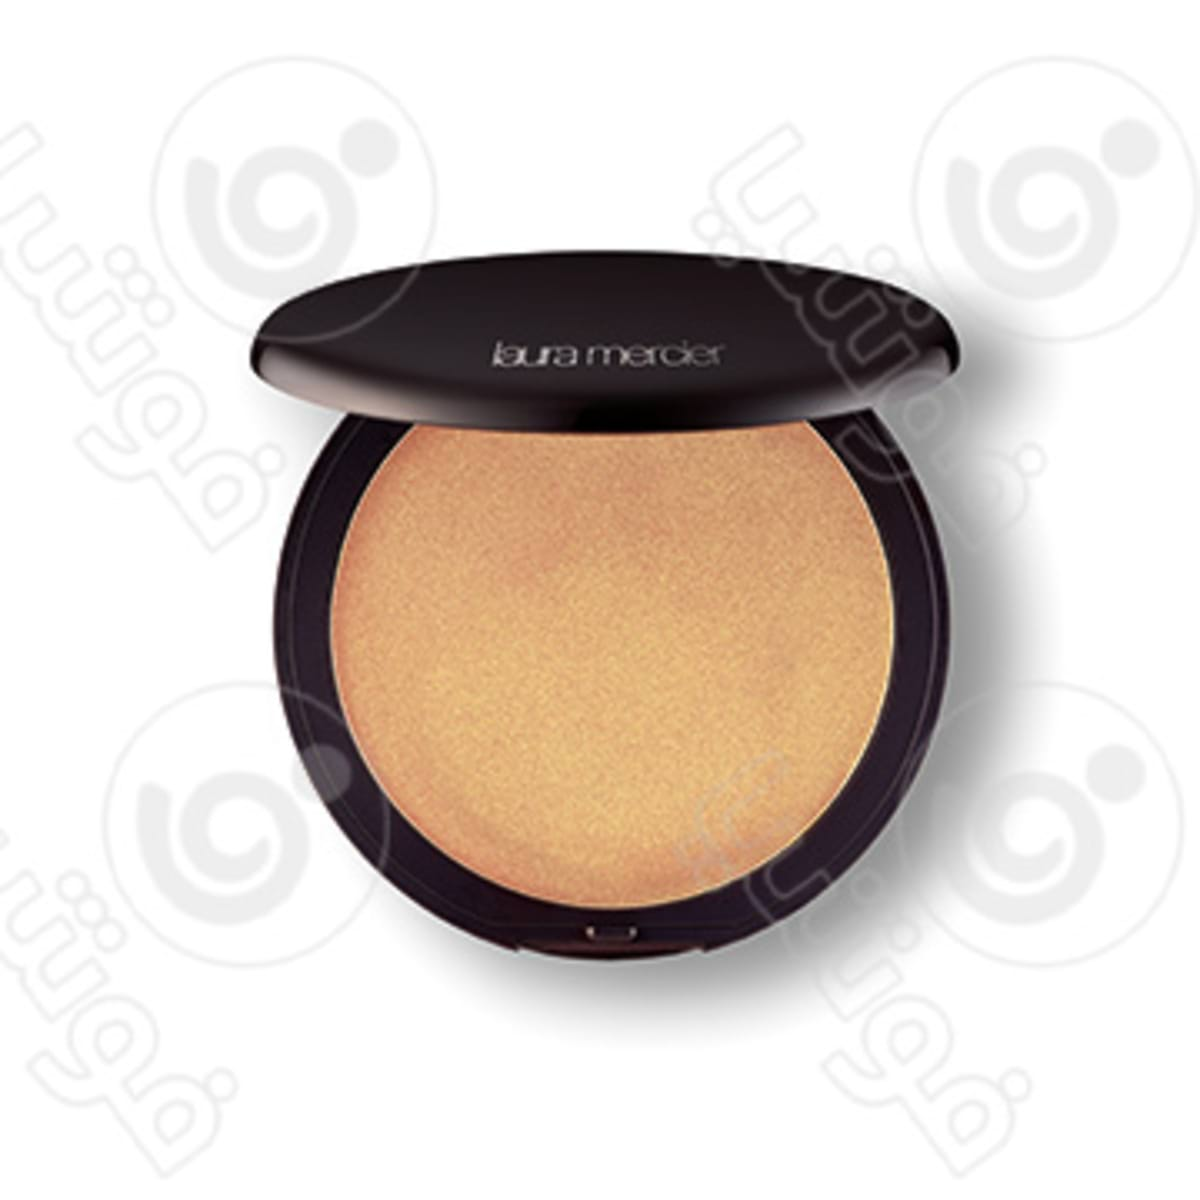 Bronzed-Butter-Face-&-Body-Veil--AED-230